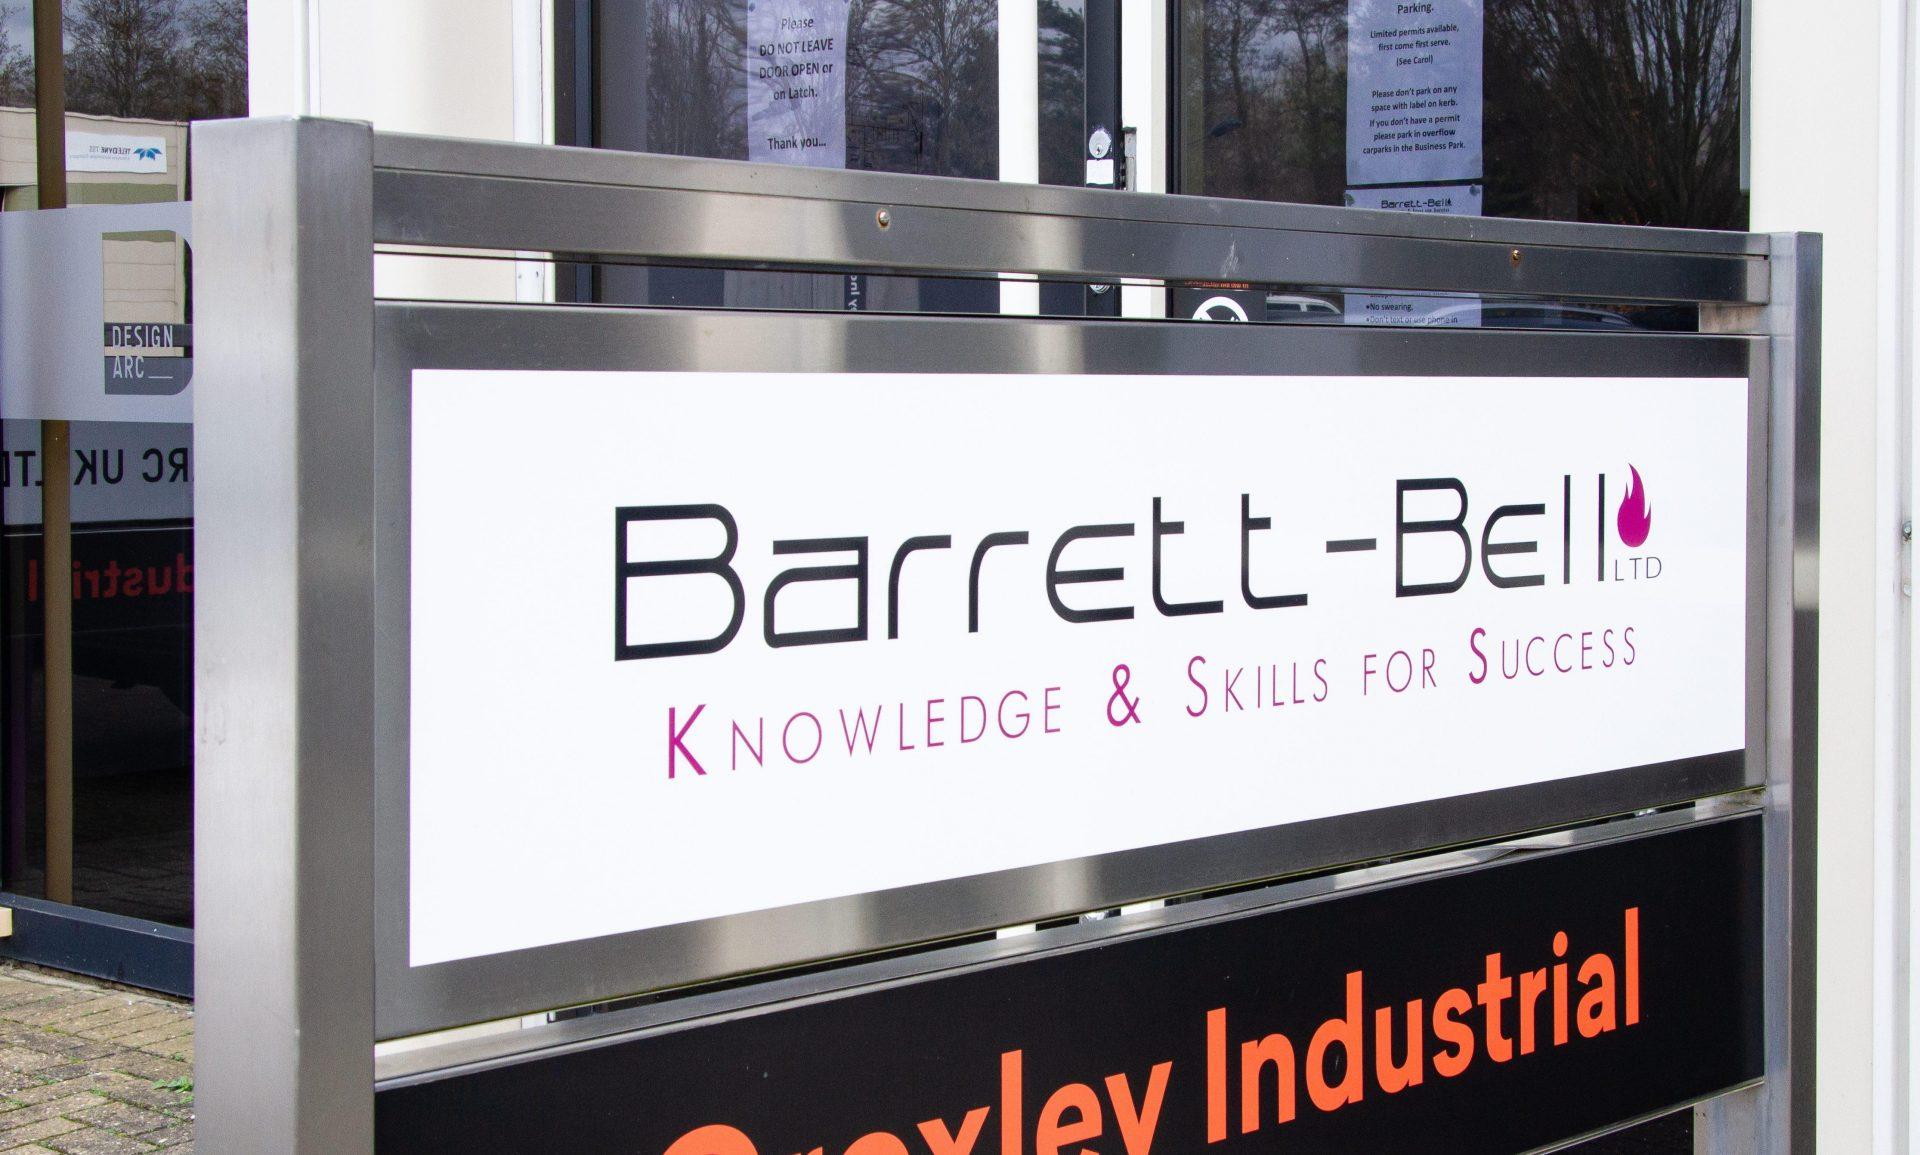 Barrett Bell, giving you the knowledge and skills for success